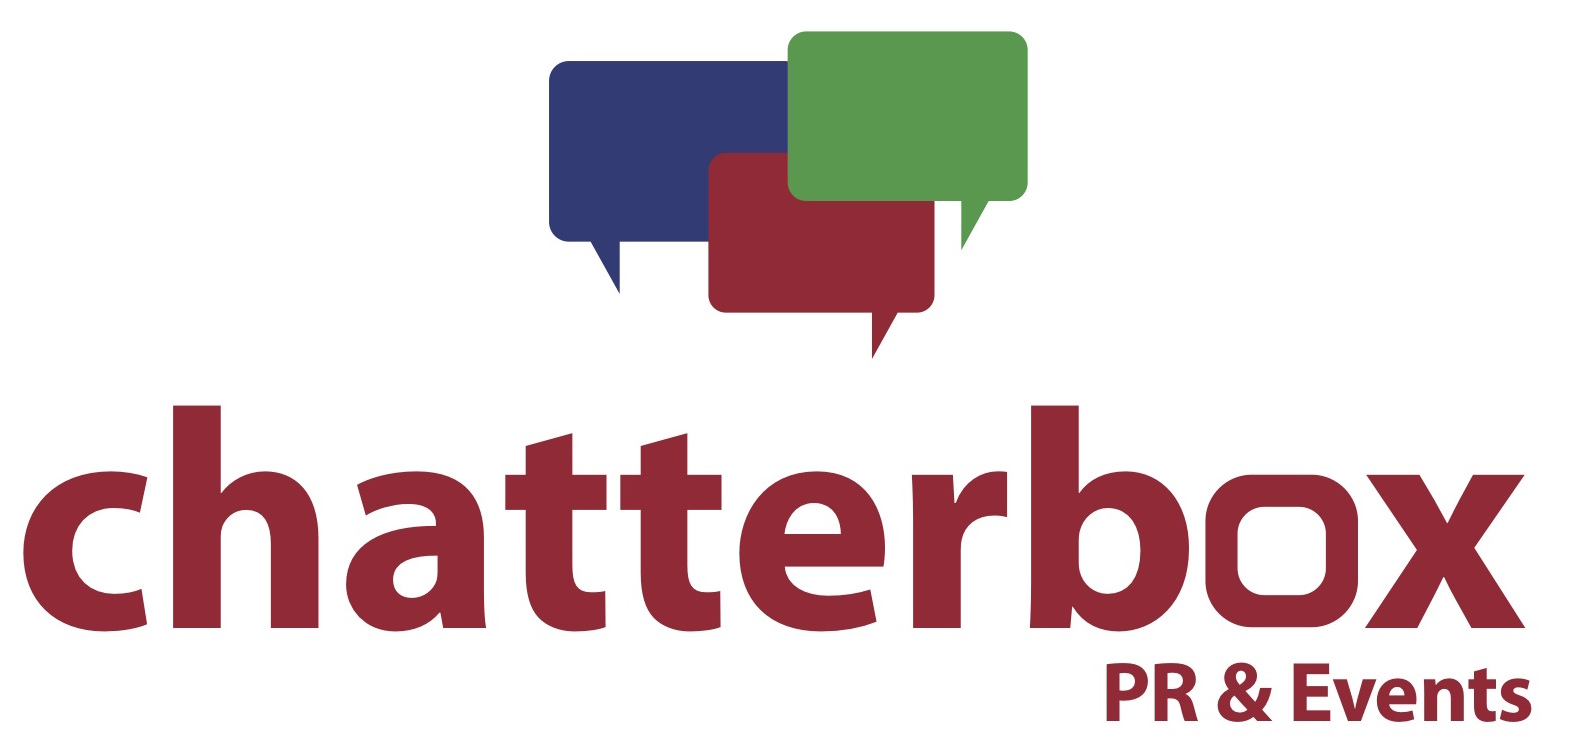 ChatterBox PR & Events